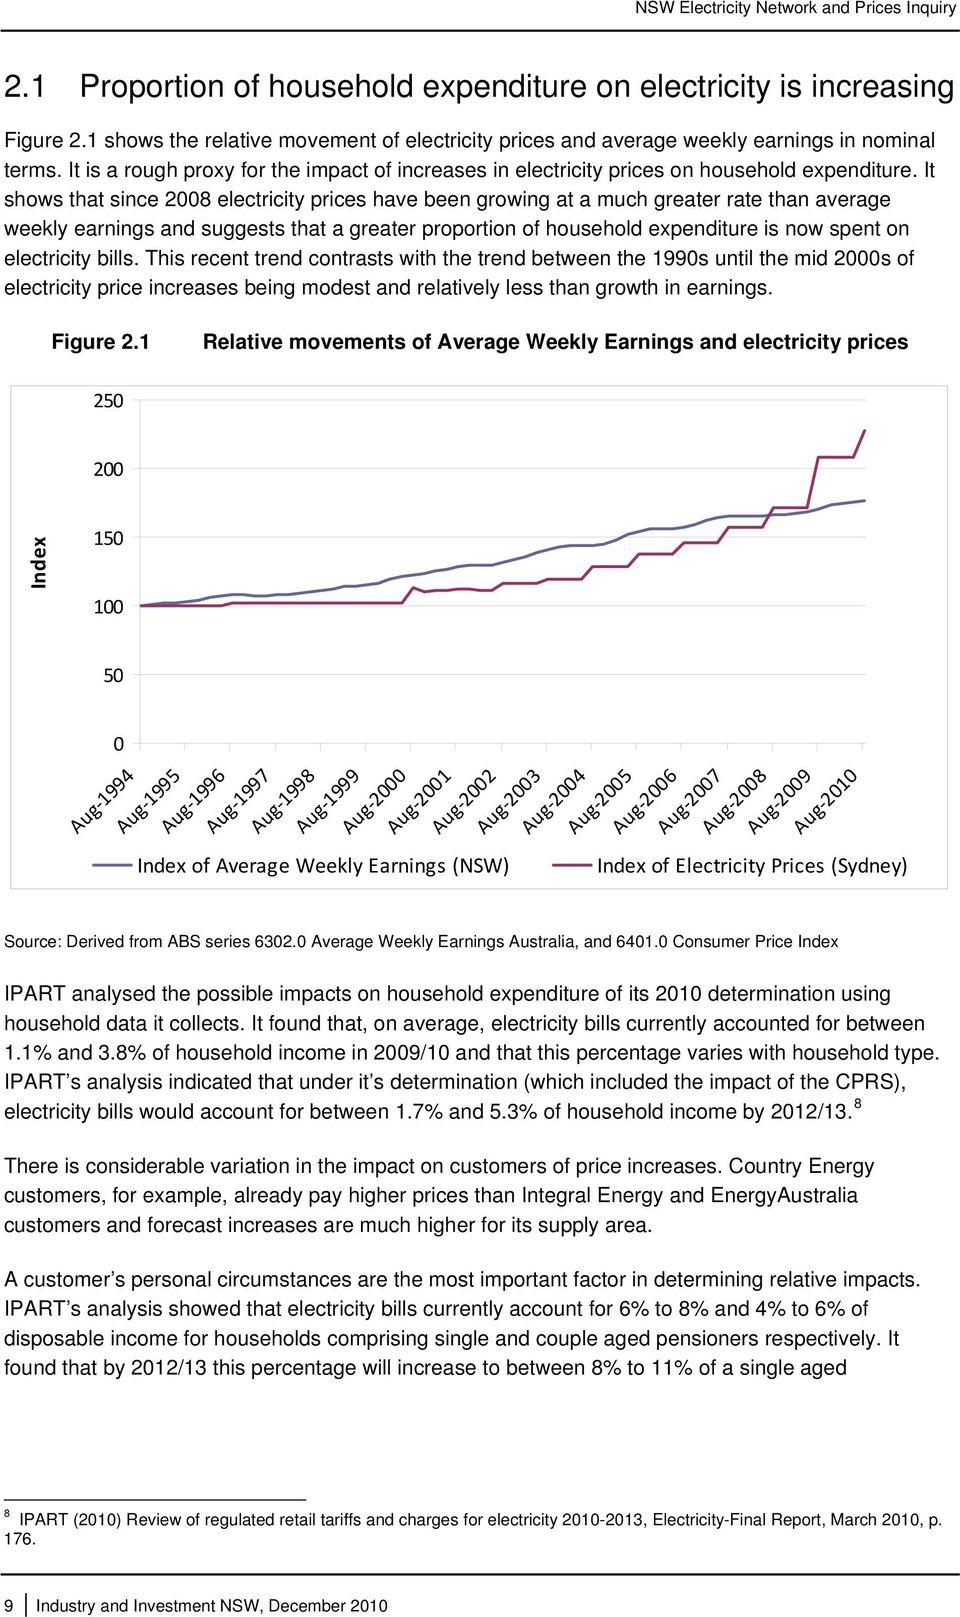 It shows that since 2008 electricity prices have been growing at a much greater rate than average weekly earnings and suggests that a greater proportion of household expenditure is now spent on